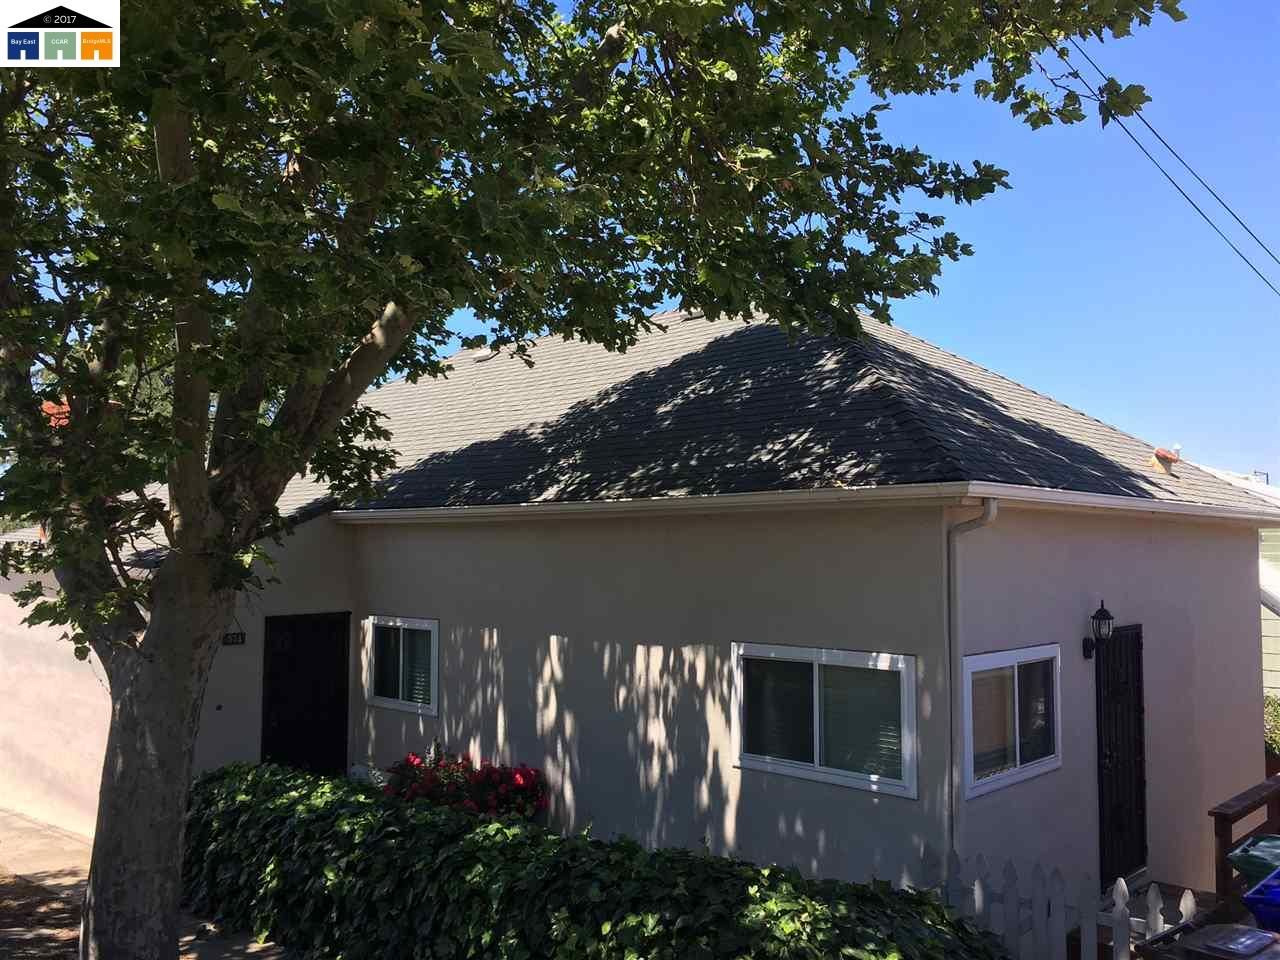 Single Family Home for Sale at 574 Alhambra Street Crockett, California 94525 United States